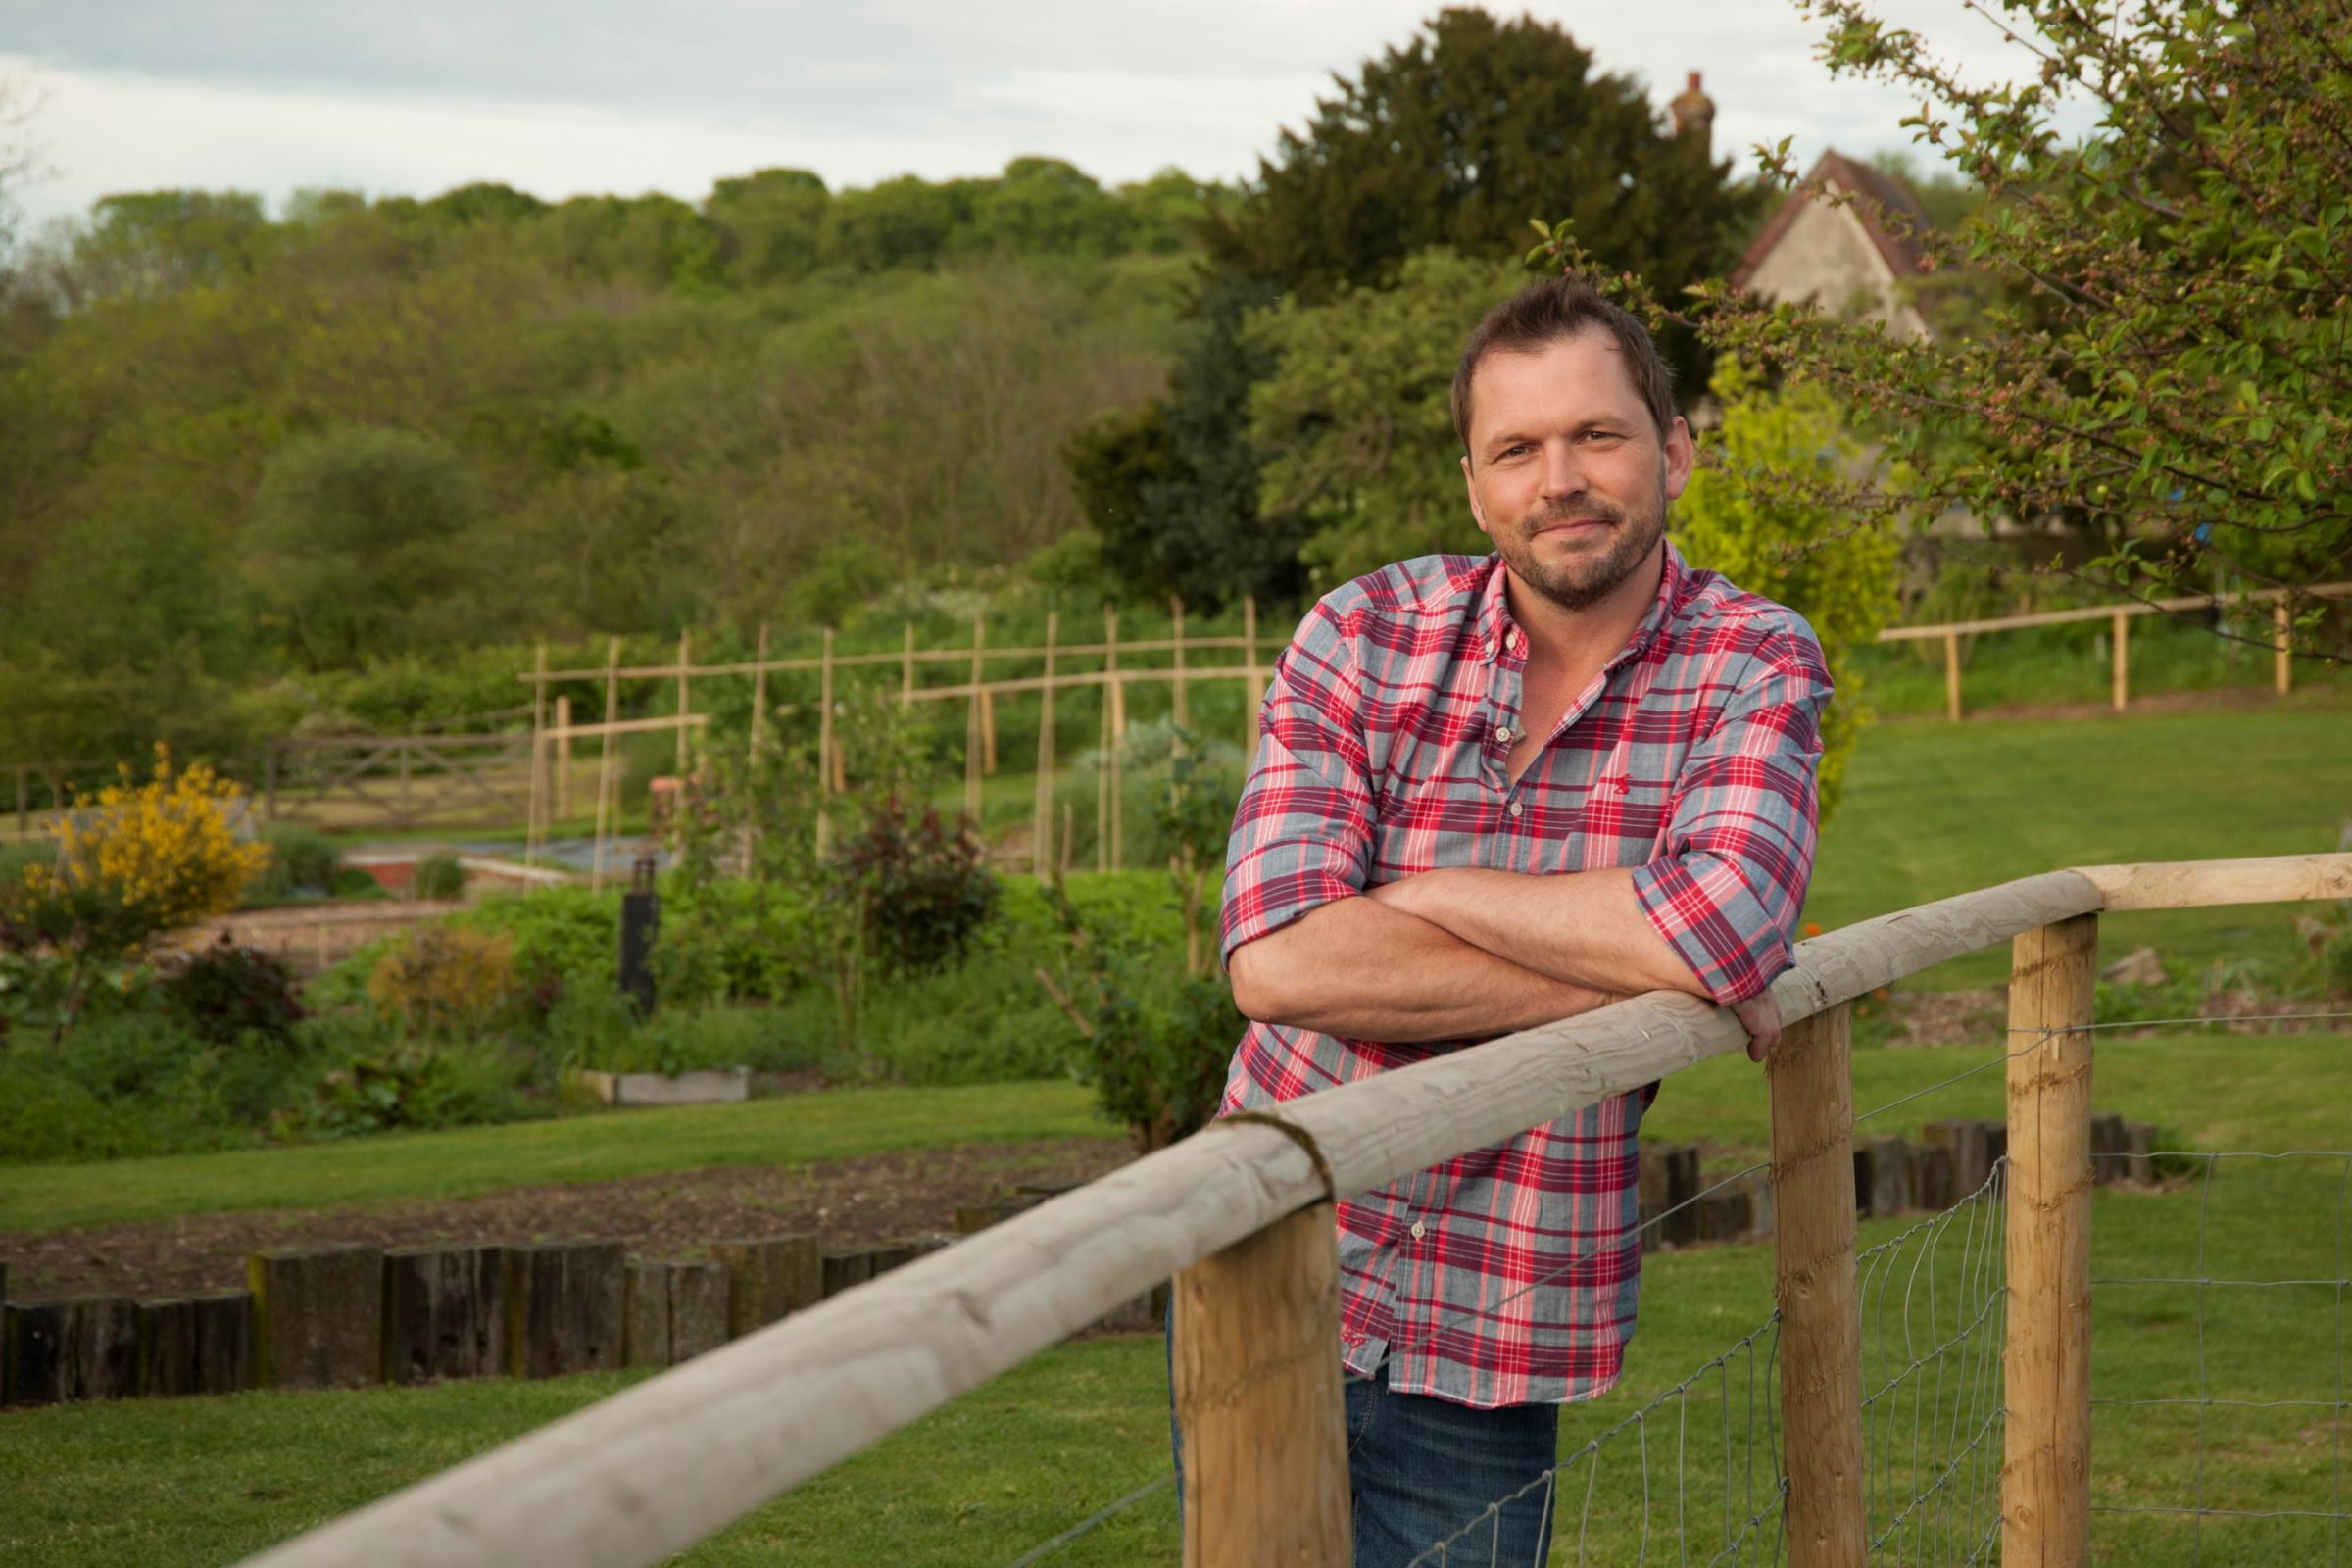 Jimmy Doherty, famous for being on-screen with chef Jamie Oliver, will help farmers diversify